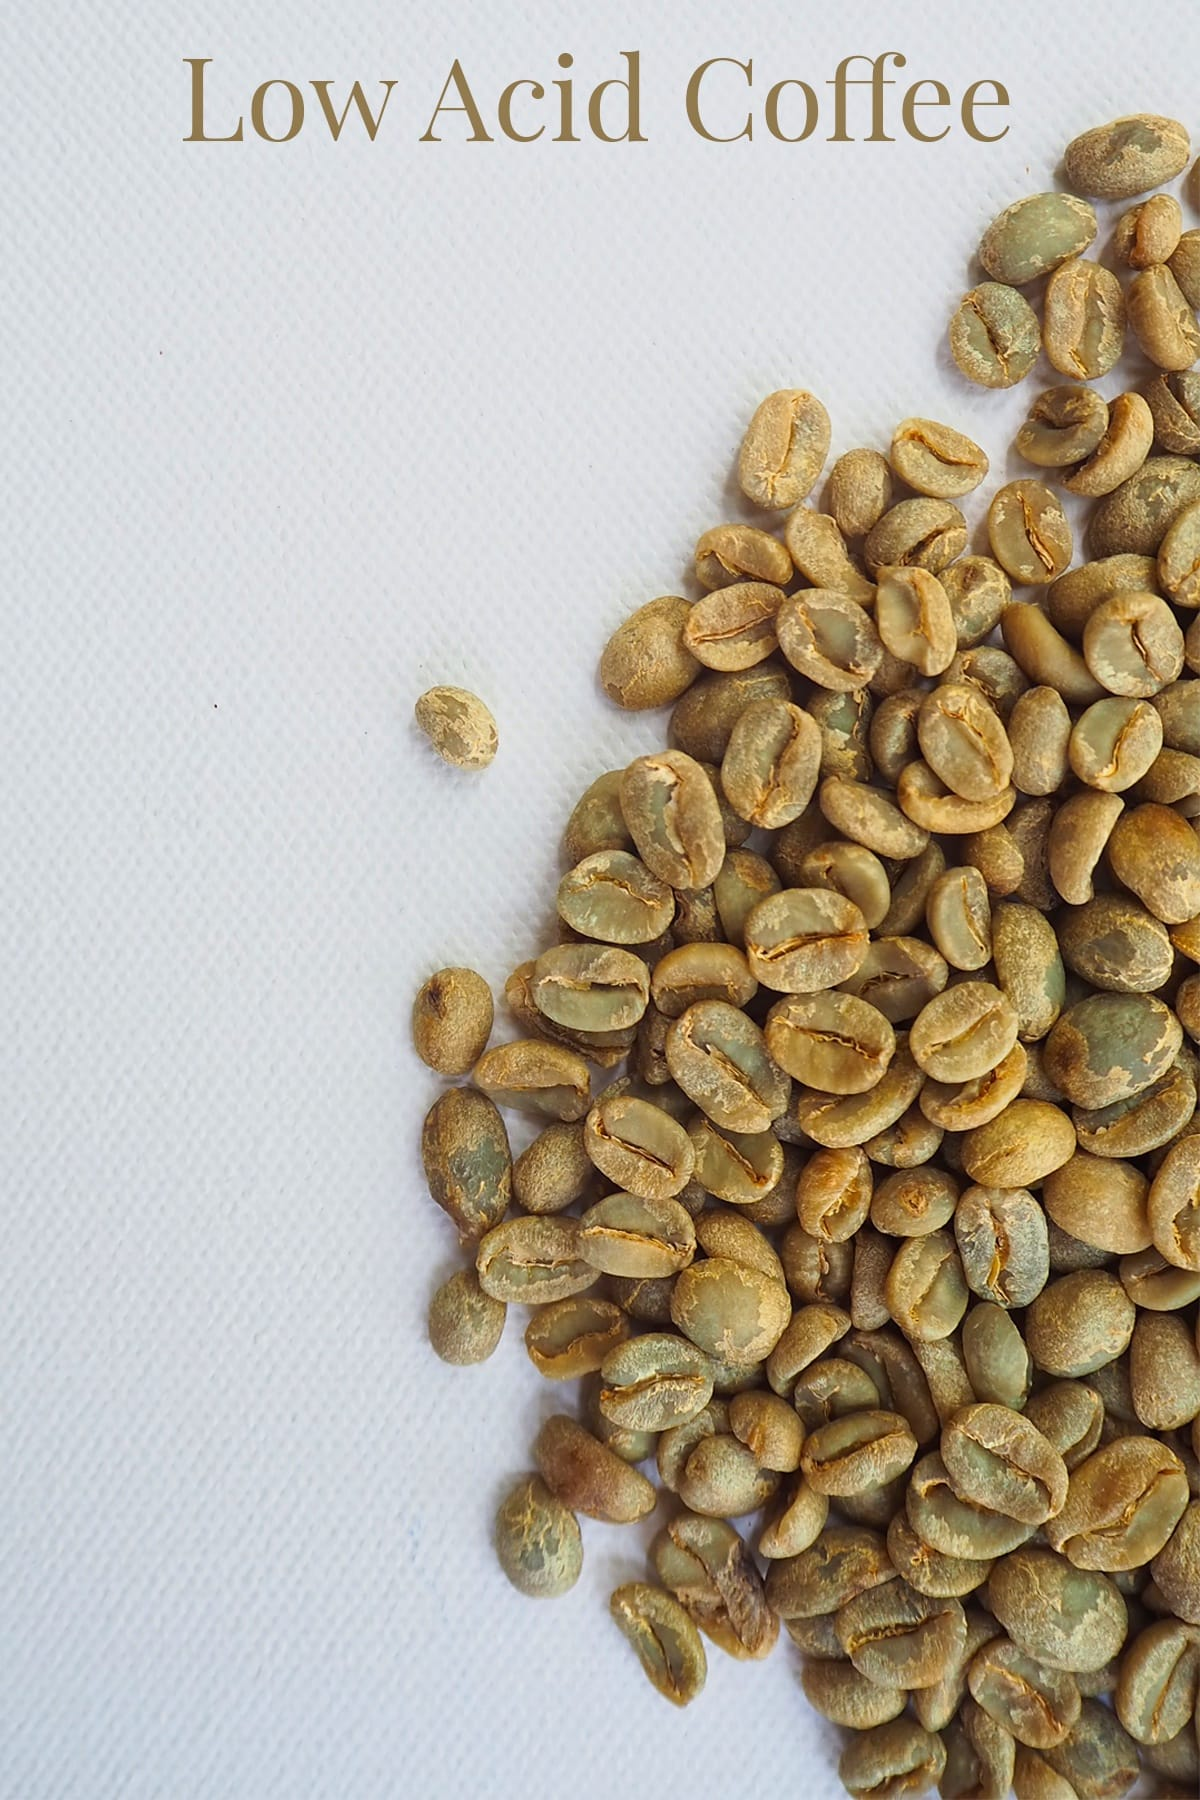 Image of Low Acid Coffee